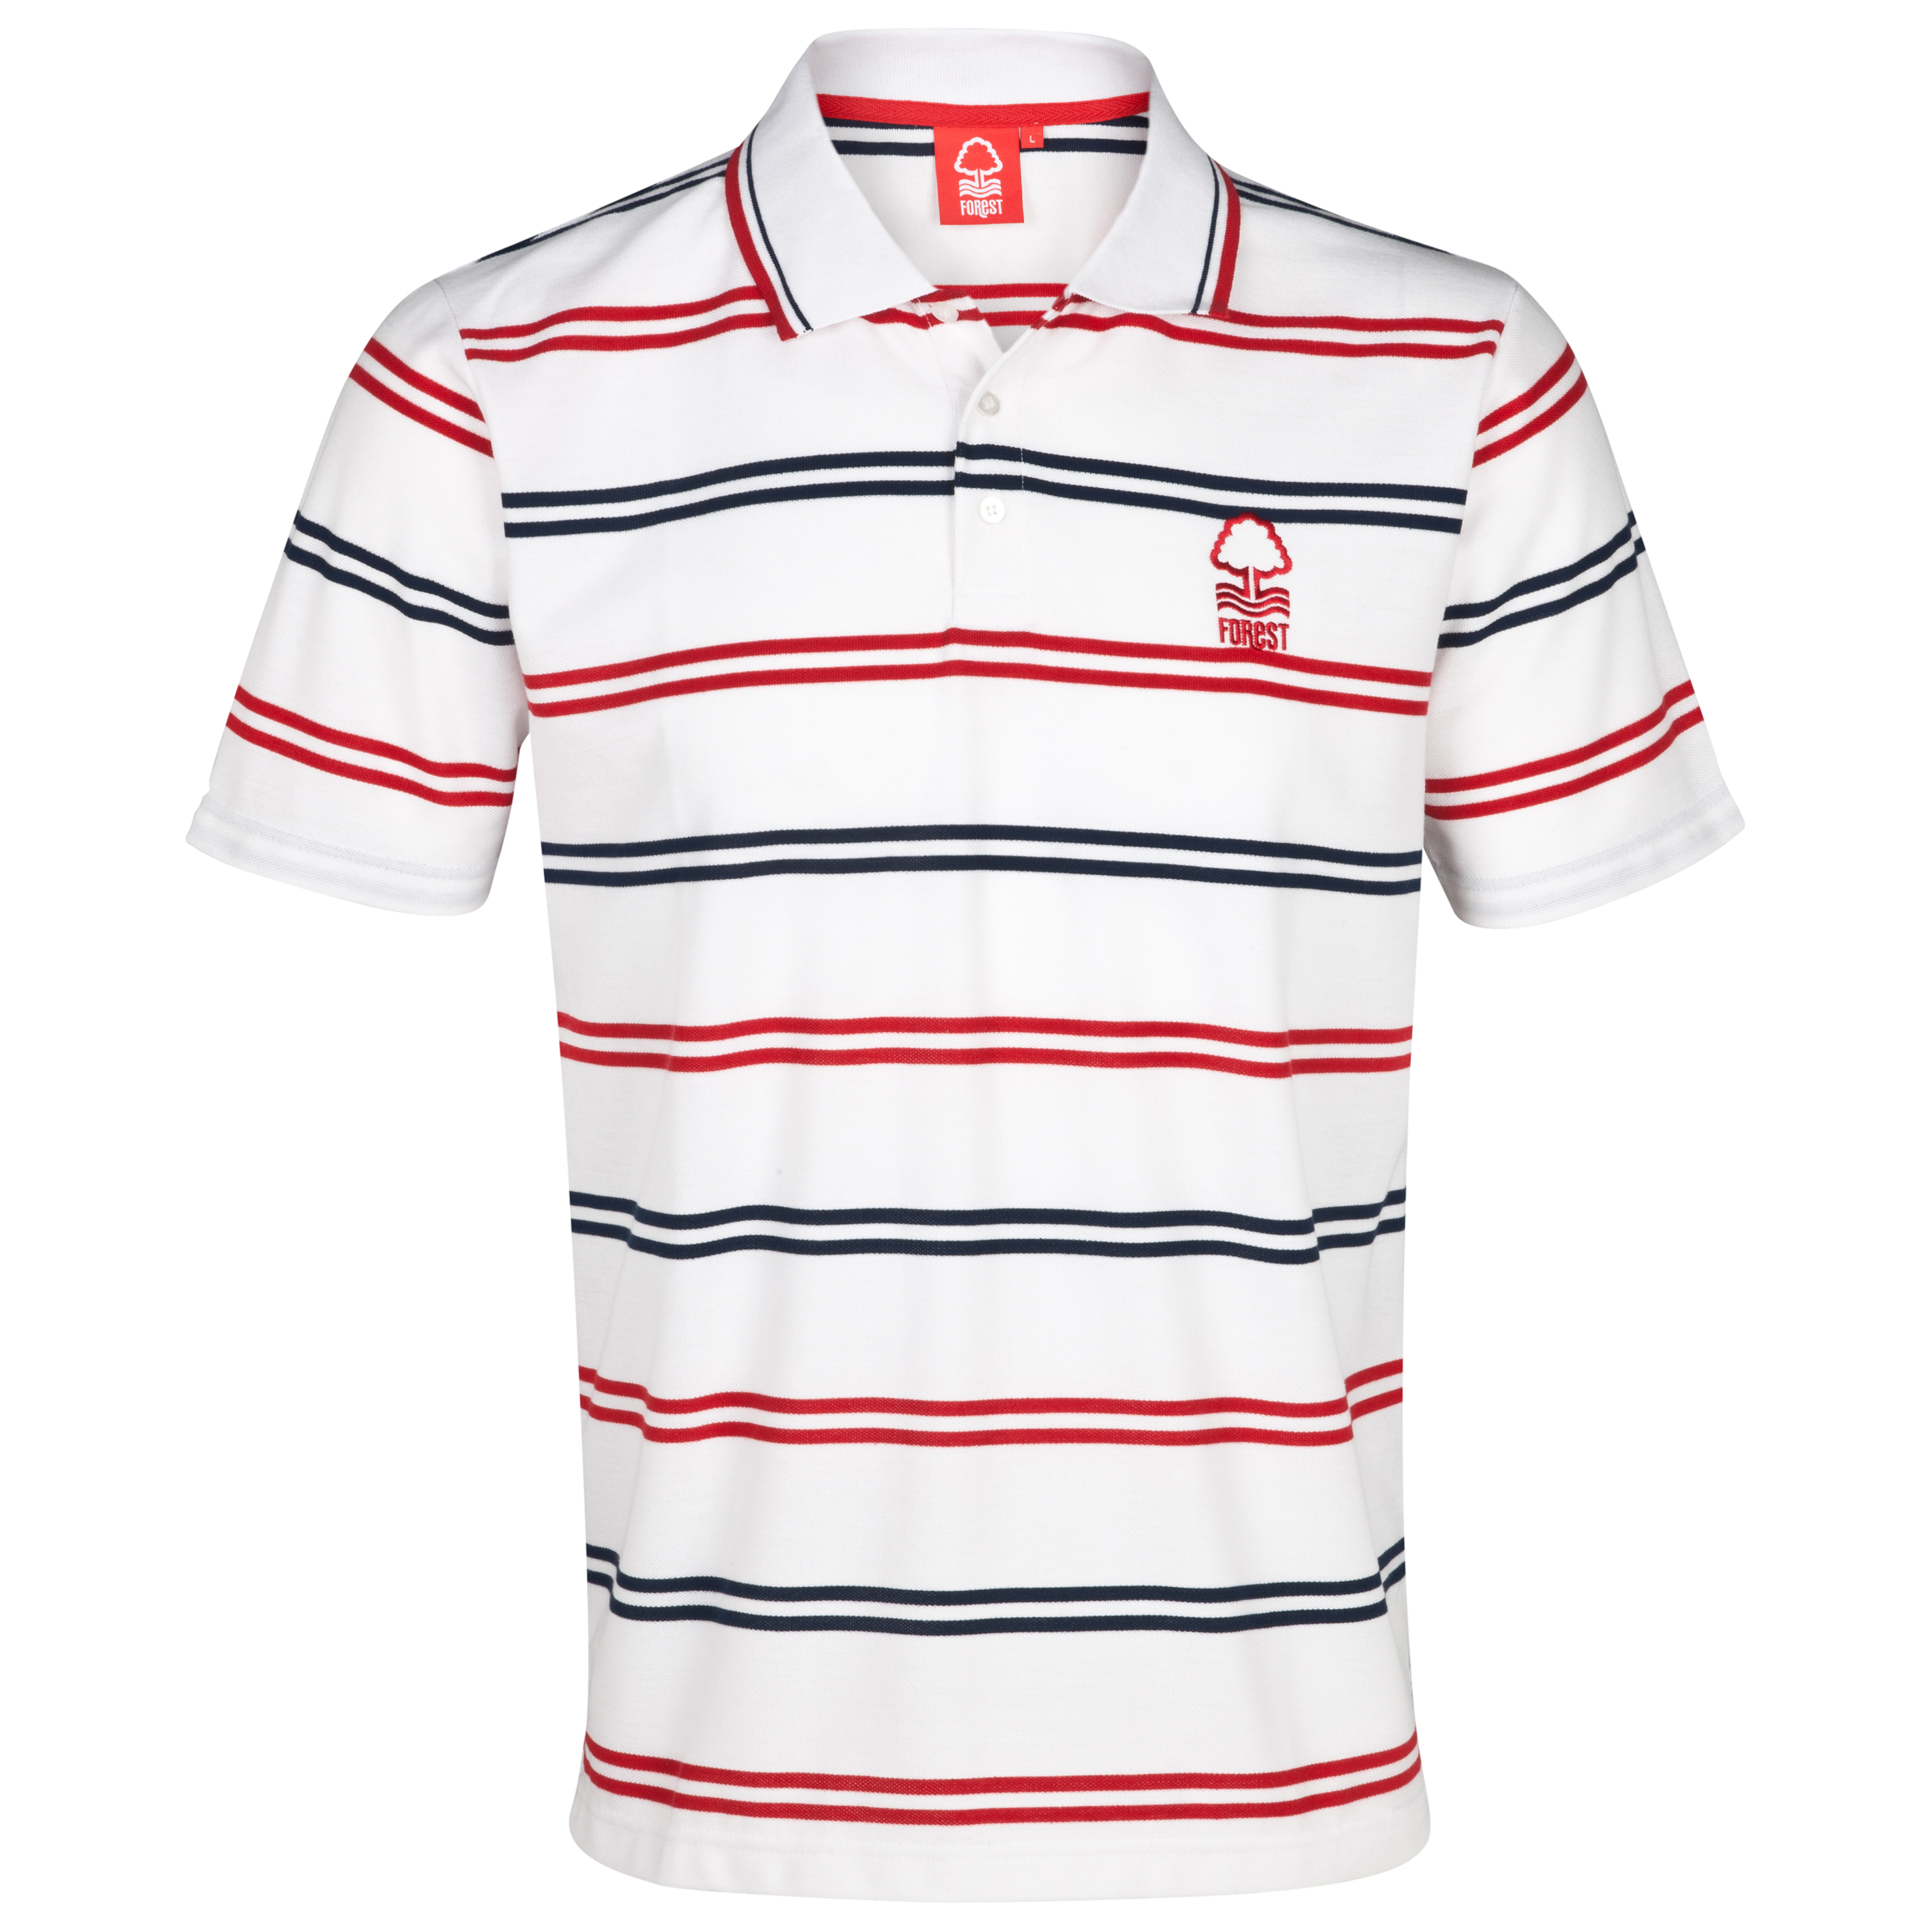 Nottingham Forest Essential Draw Polo Top - White/Red/Navy - Older Boys